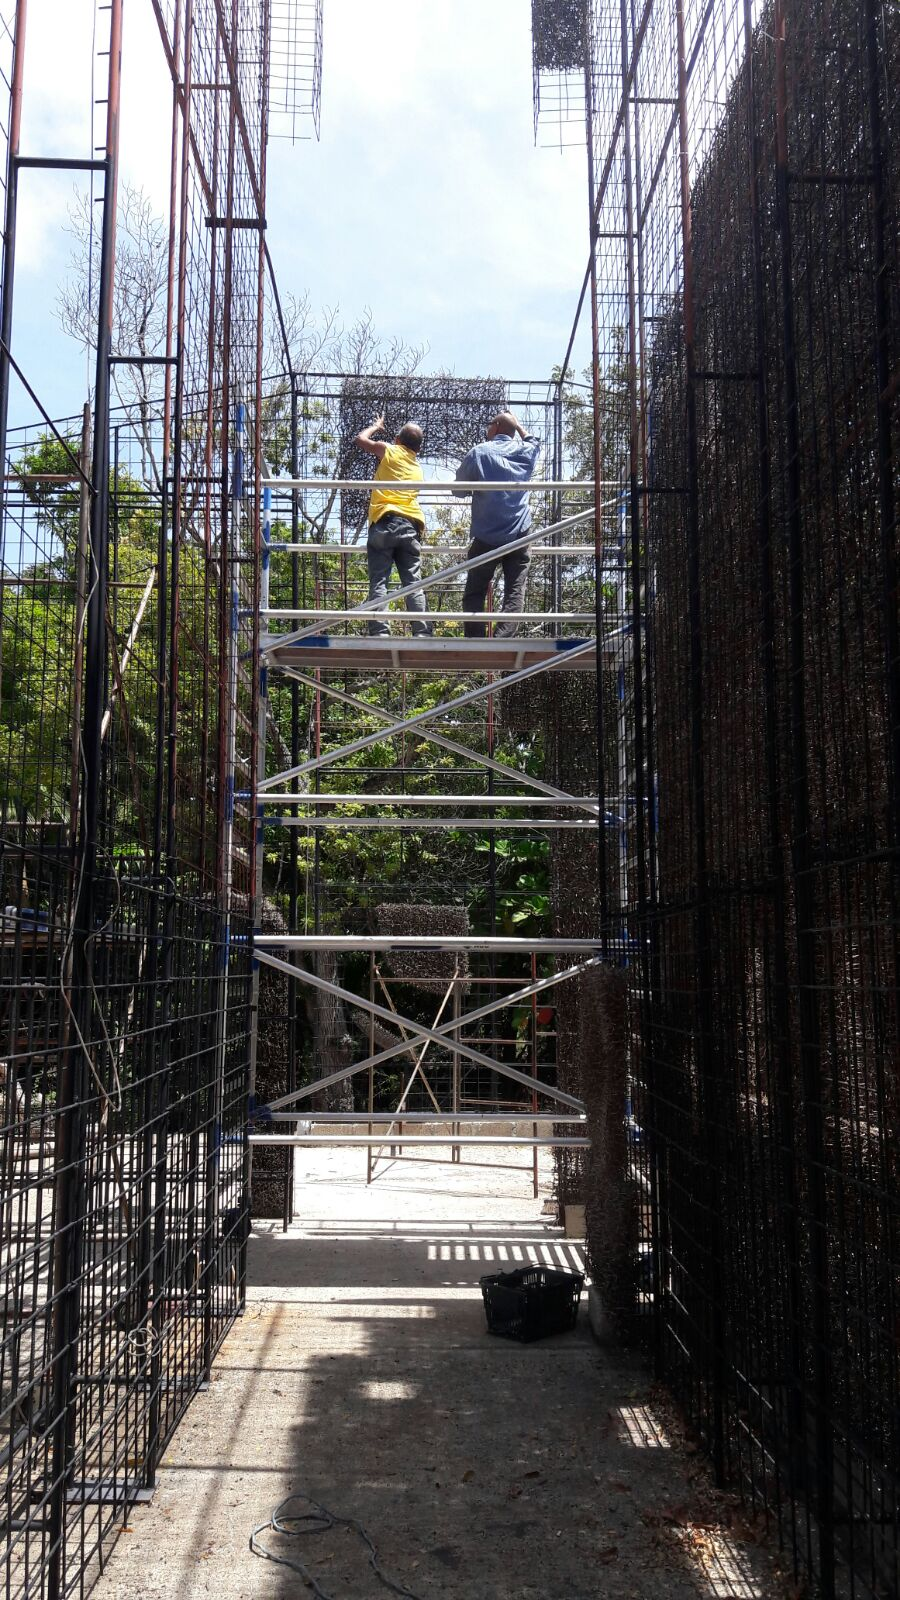 Construction work (2018)